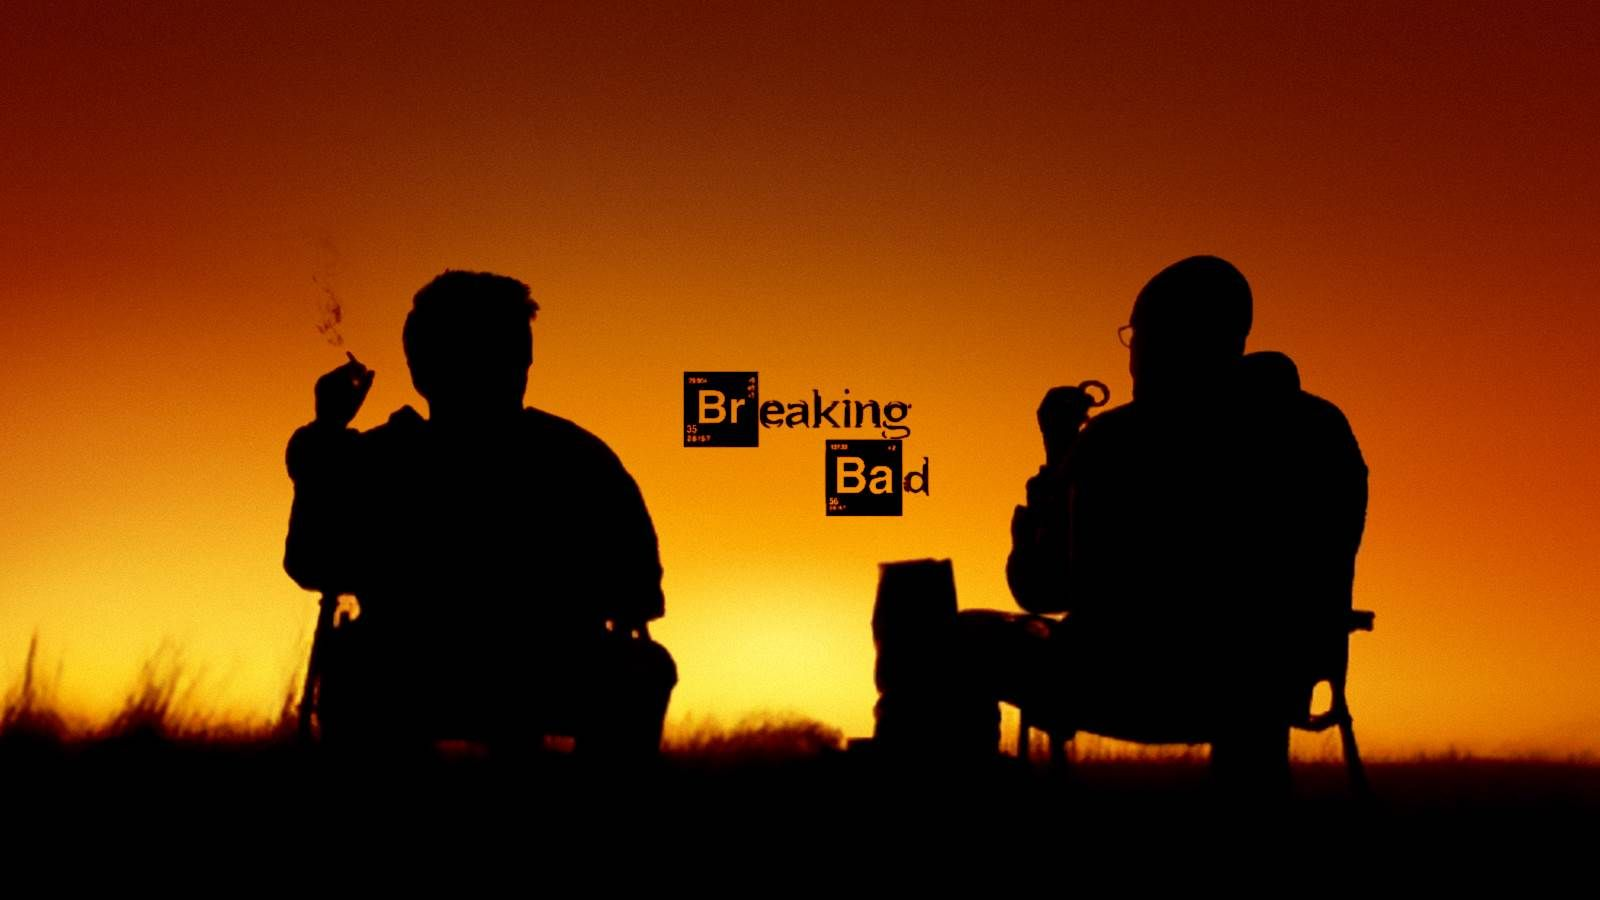 breaking bad hd wallpapers and backgrounds 1600×900 breaking bad